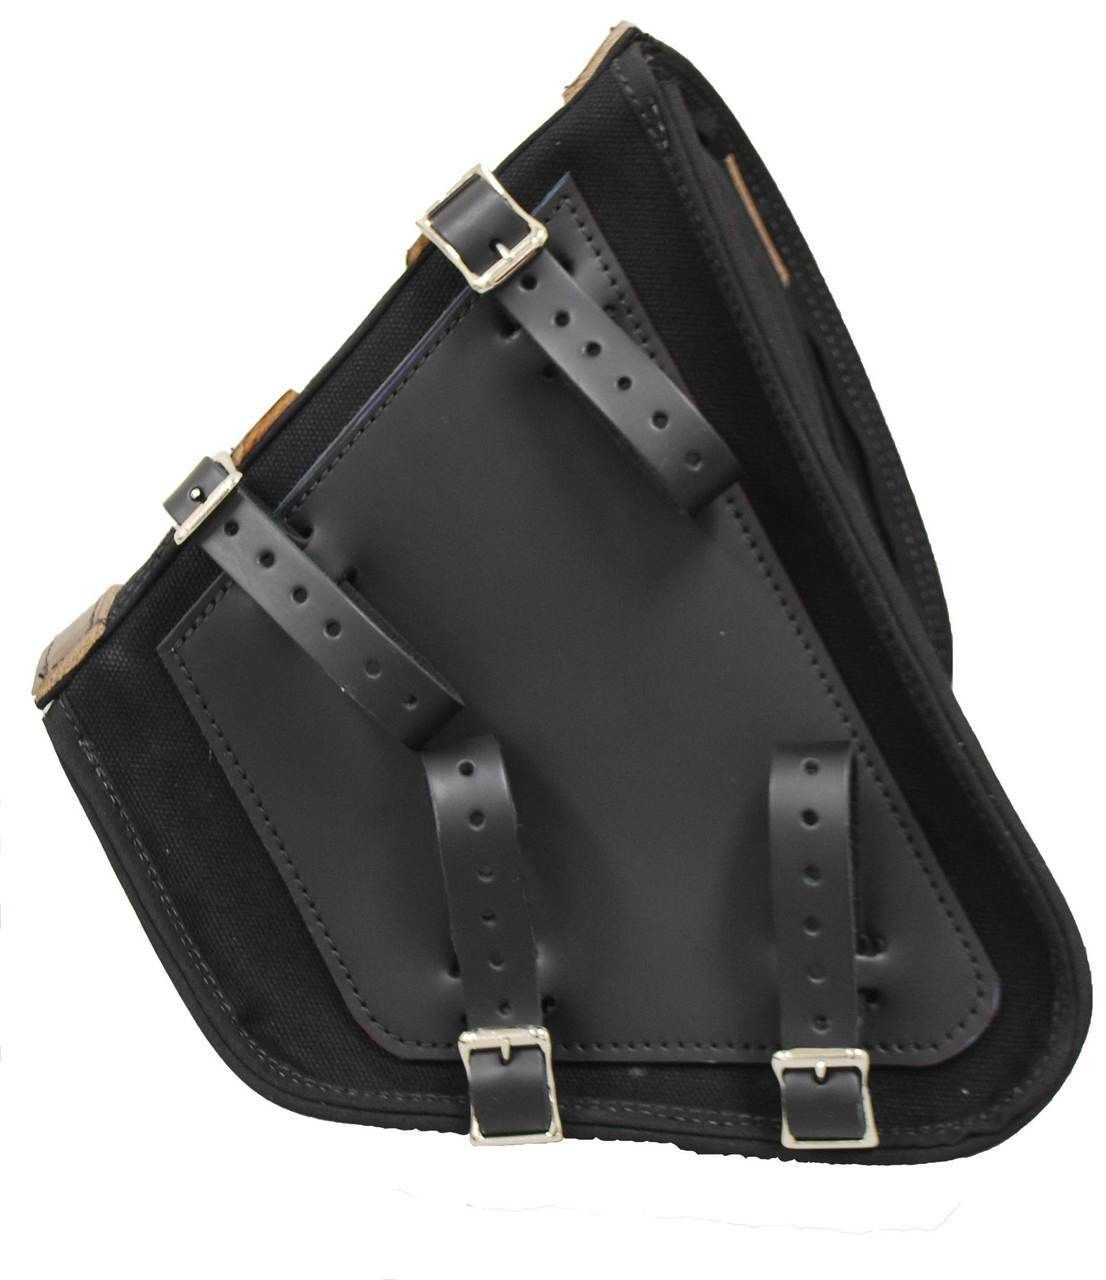 bd275952fd5d La Rosa Harley-Davidson All HD Softail Canvas Softail Left Side Saddle Bag  Swingarm Bag Black with Brown Leather Straps - La Rosa Design Corp   ...